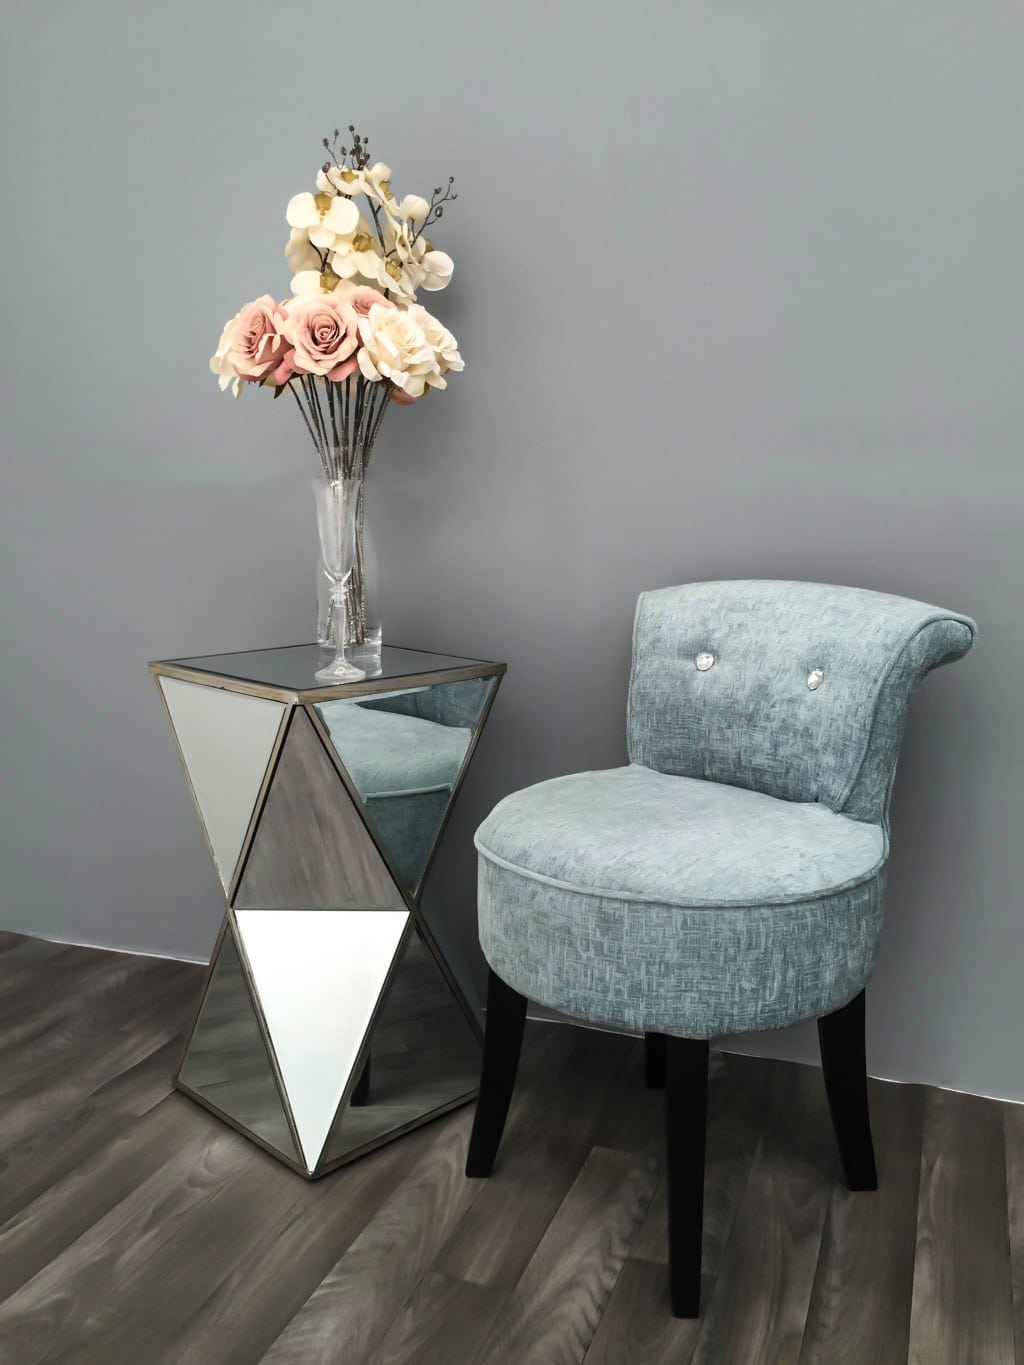 Mirrored Side Table arranged with flowers, glass vase and blue chair